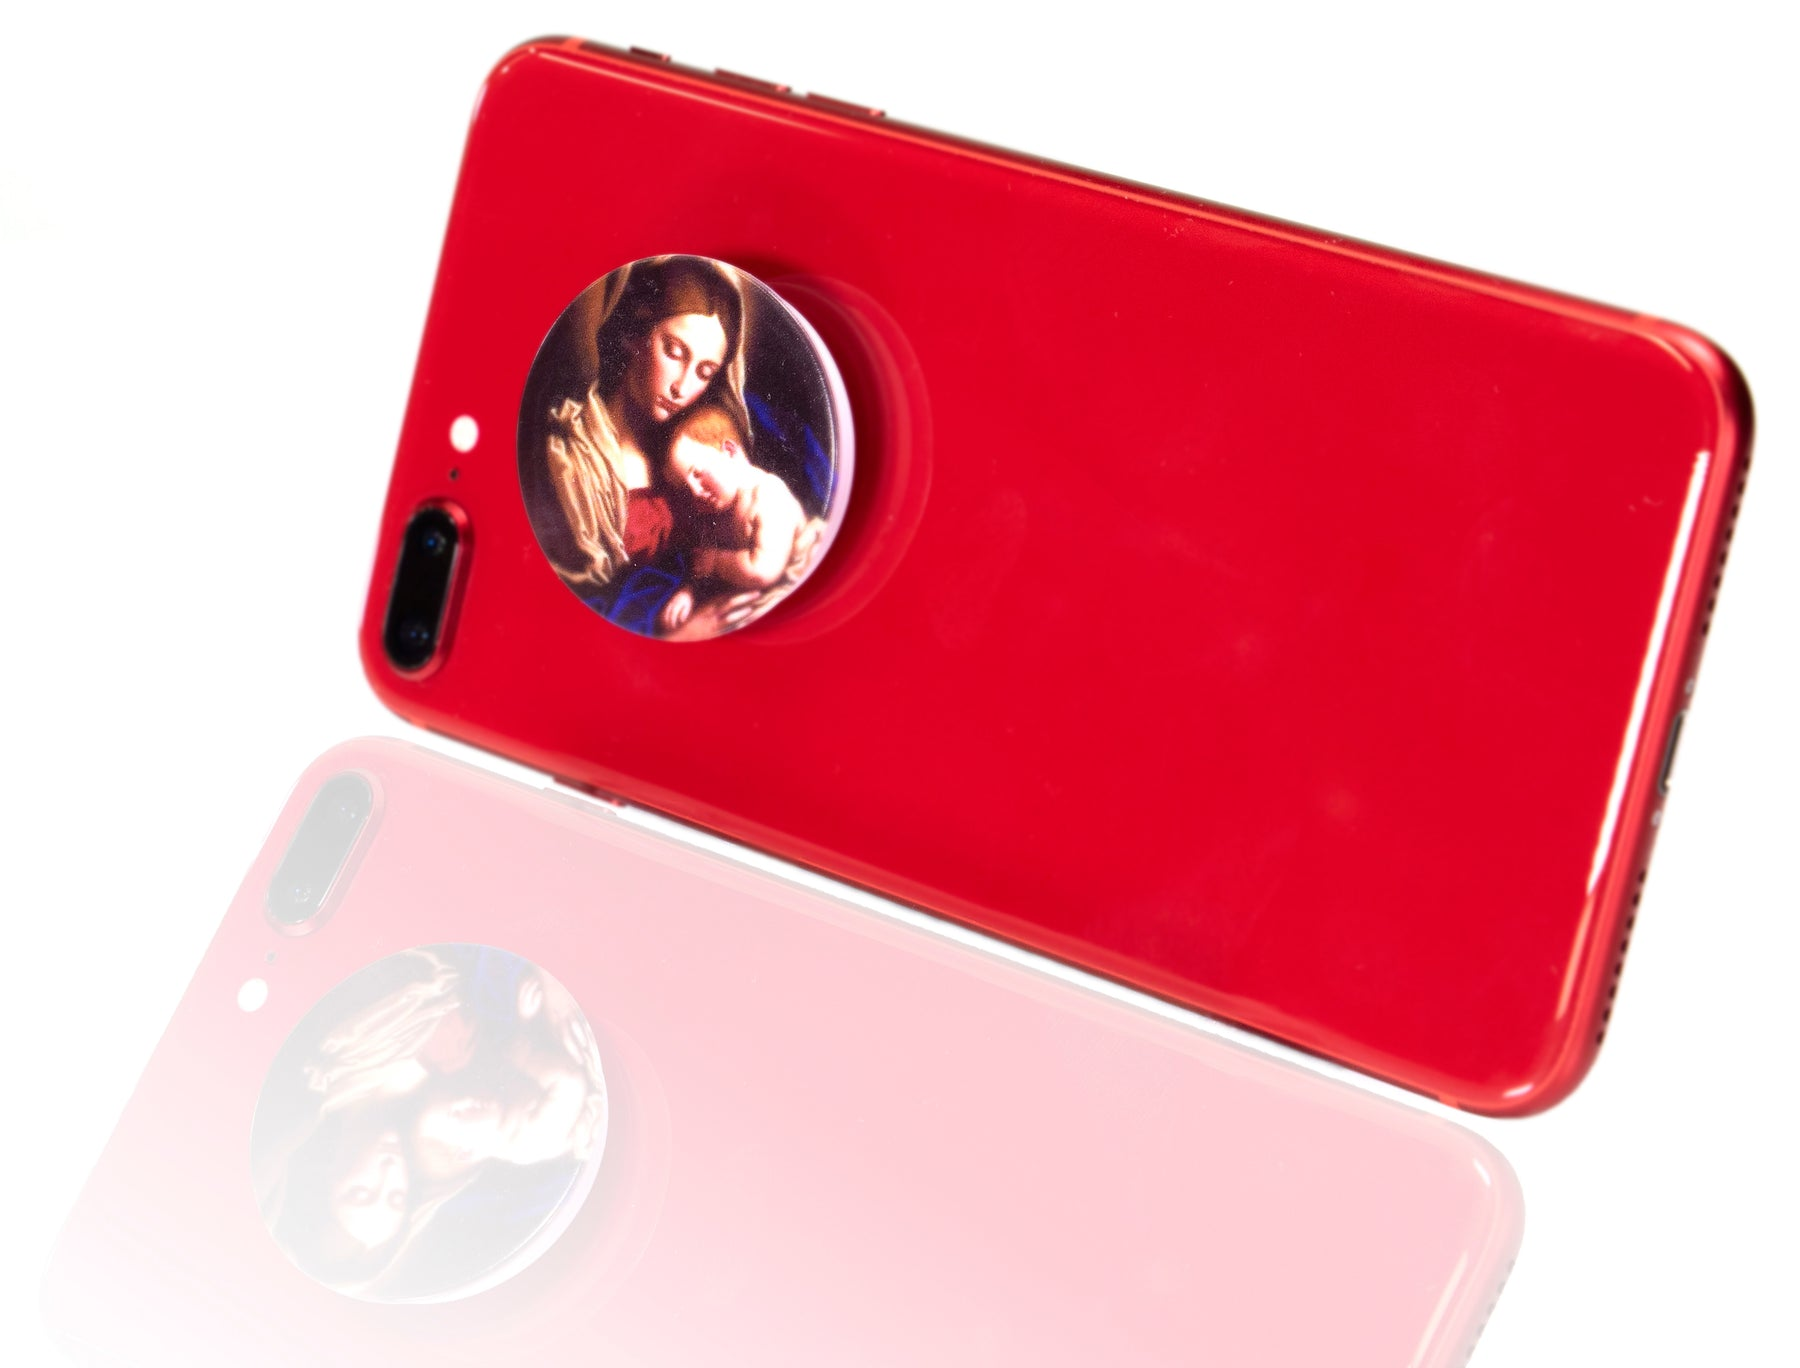 Madonna and Child Faith Socket: Expandable Cell Phone Stand on a red iPhone